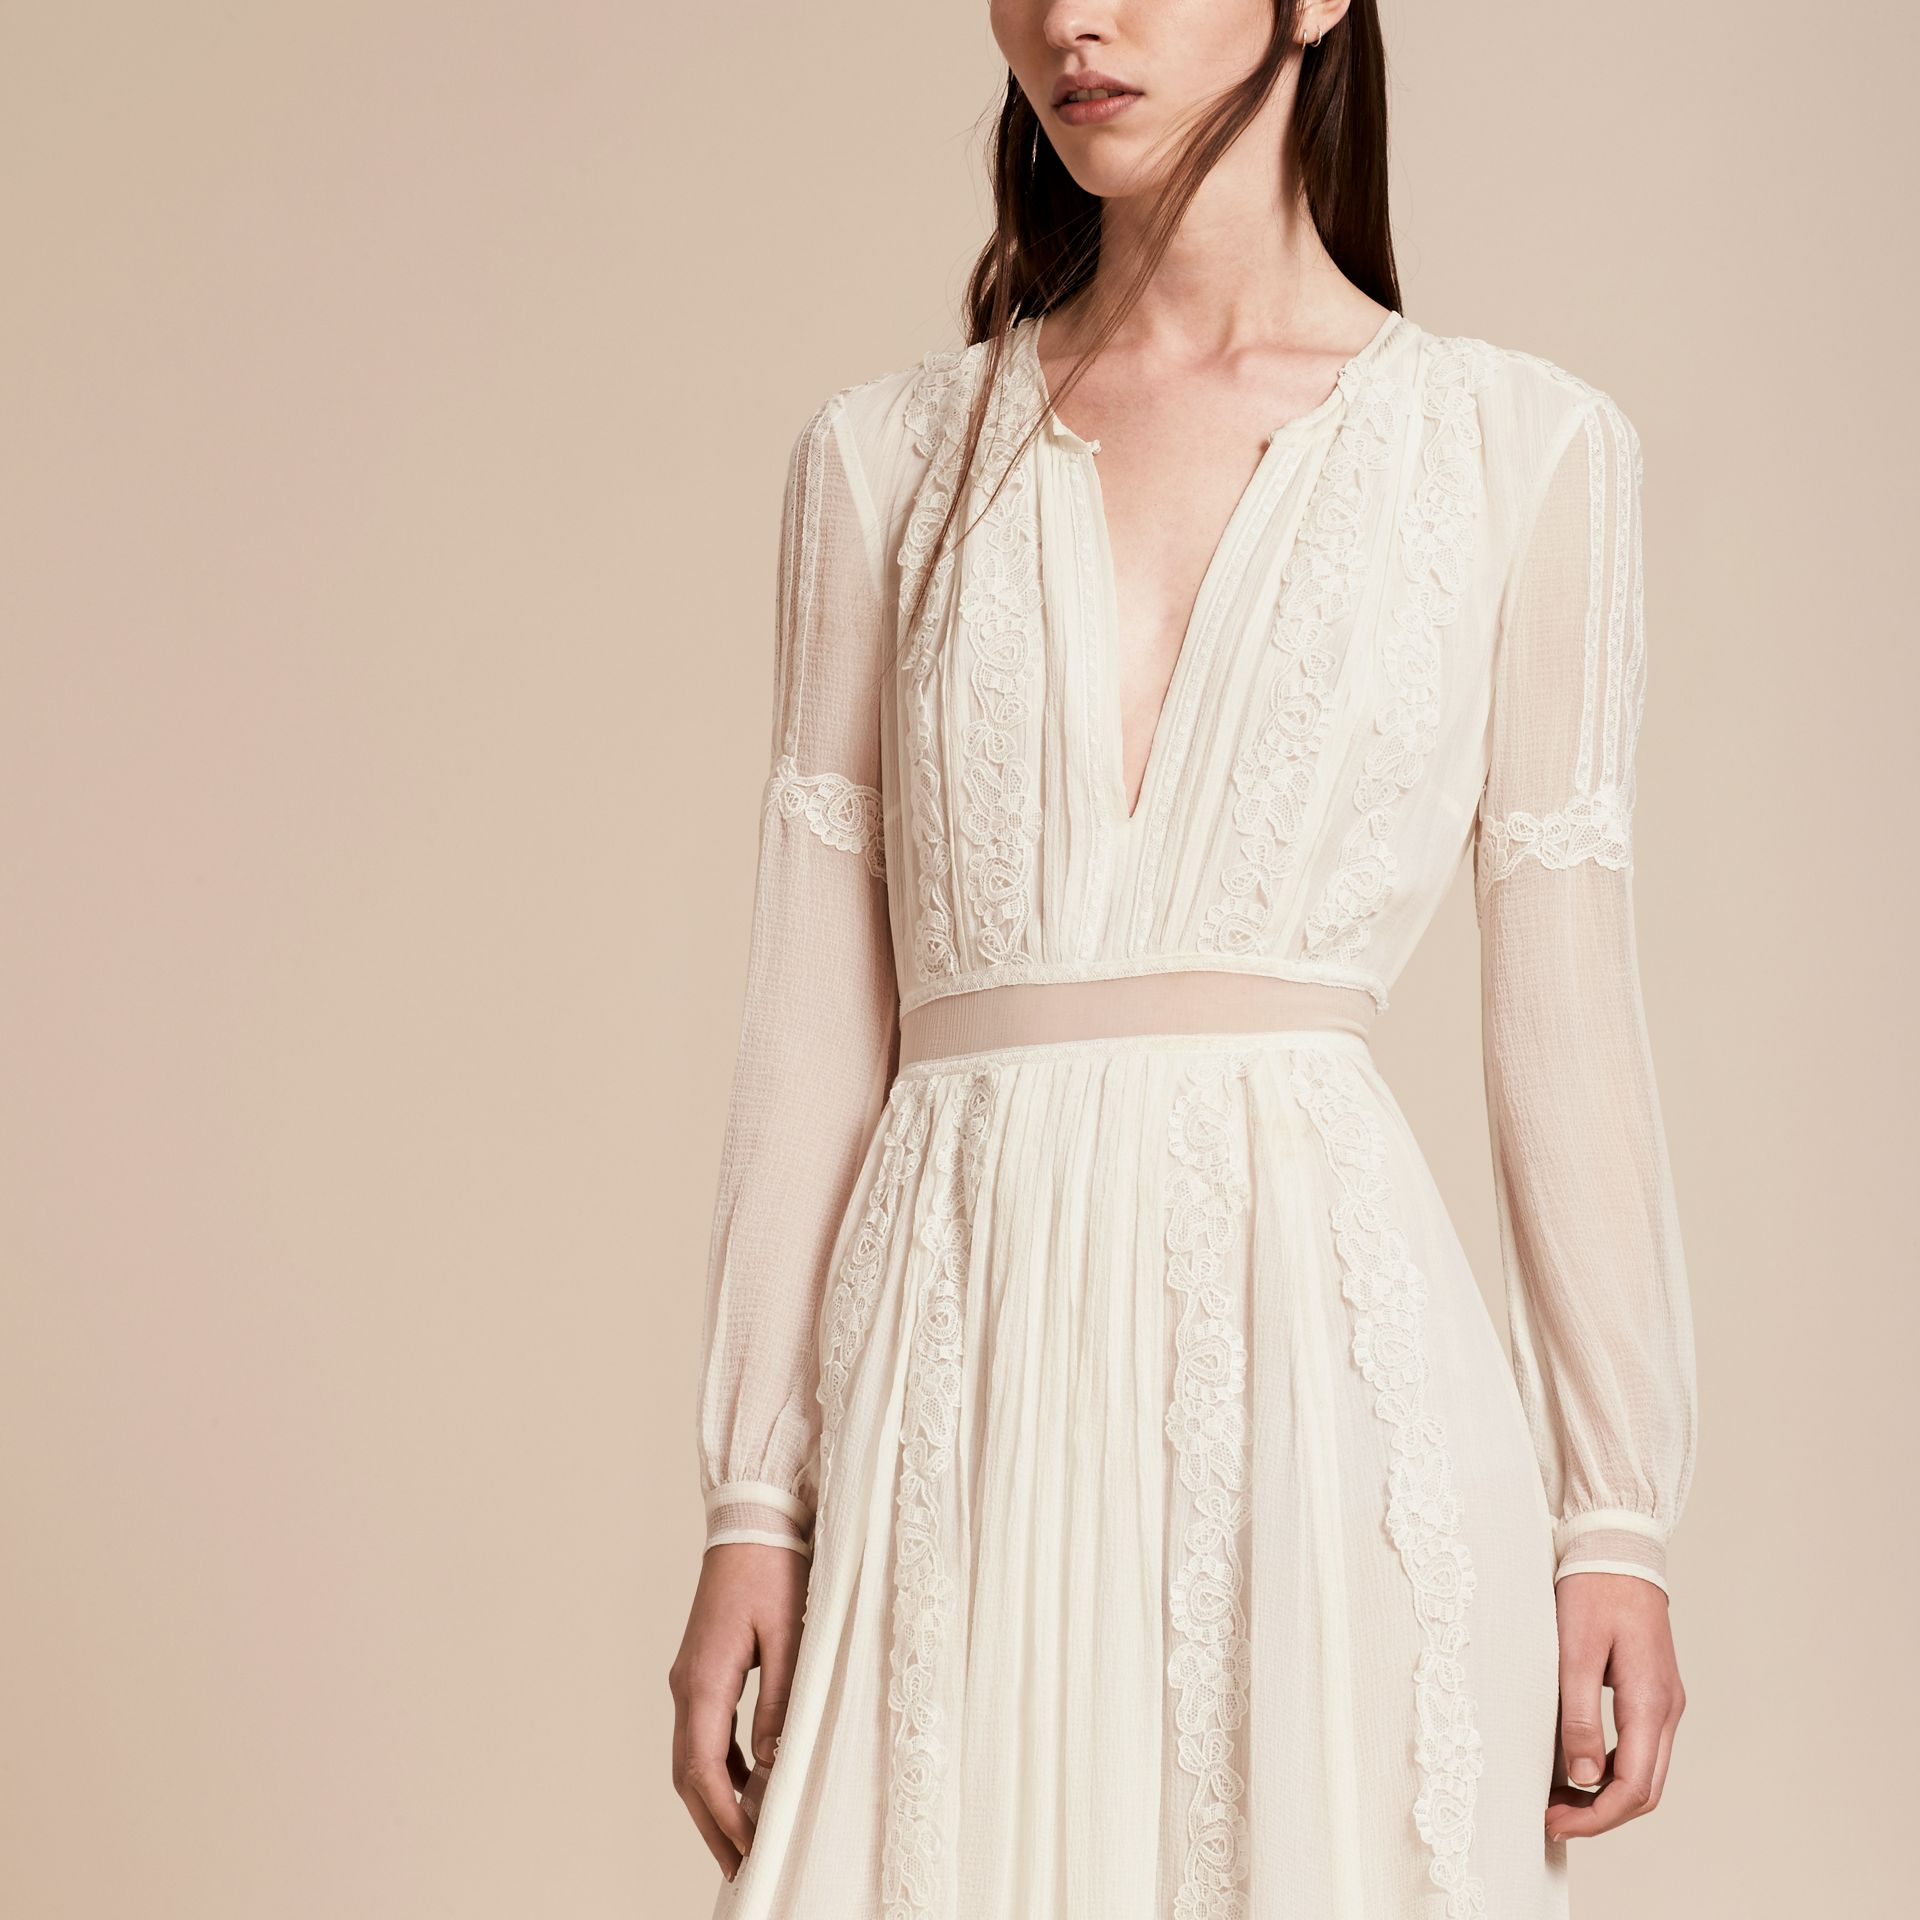 Lace Detail Silk Crepon Floor-length Dress in White - Women | Burberry - gallery image 5